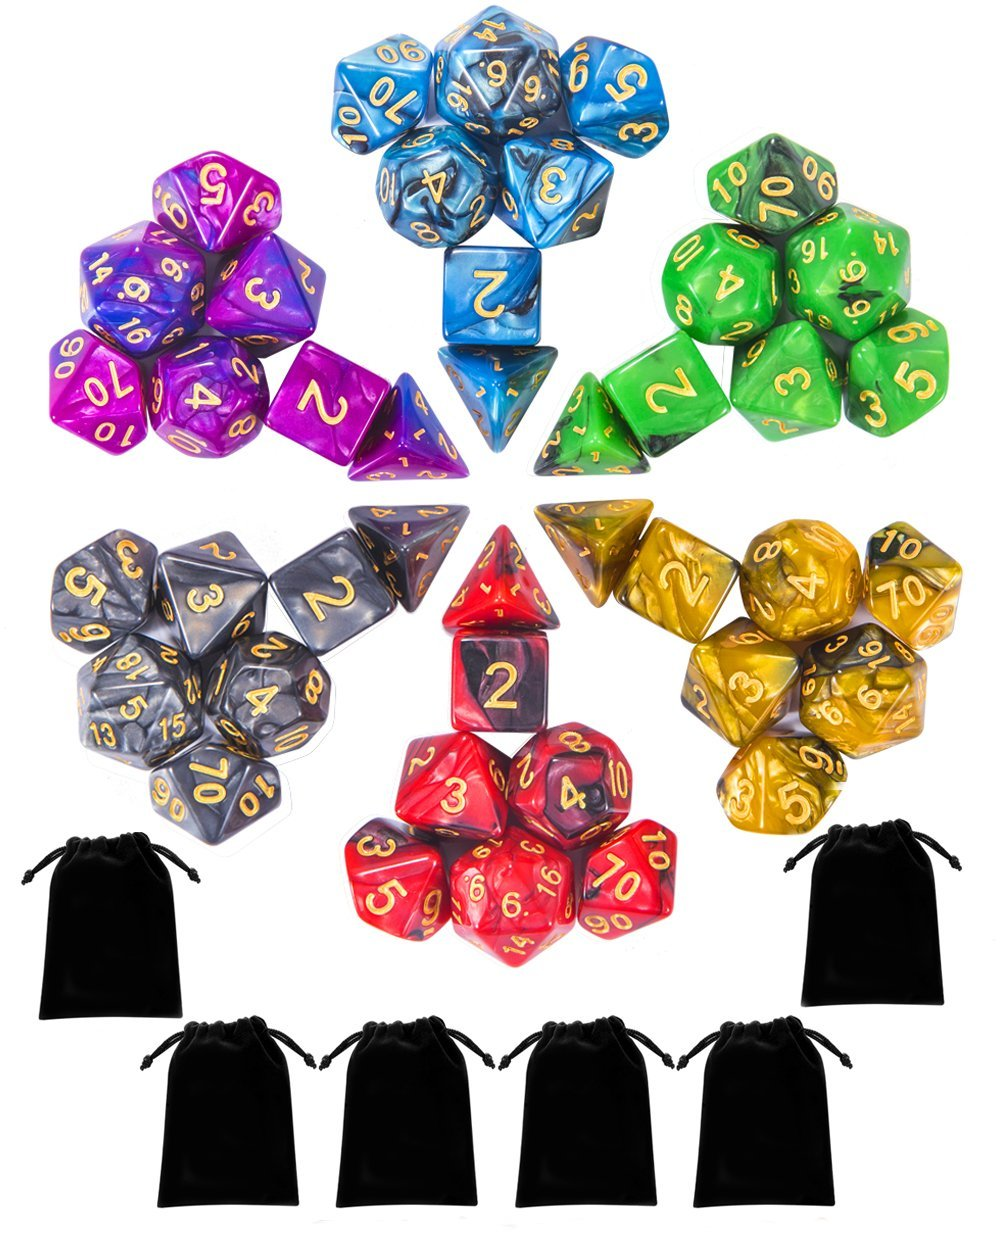 iFergoo 42 Pieces Polyhedral Dice, Double Colors Dnd Game Dice for Dungeons and Dragons DND RPG MTG Table Game D4 D8 D10 D12 D20